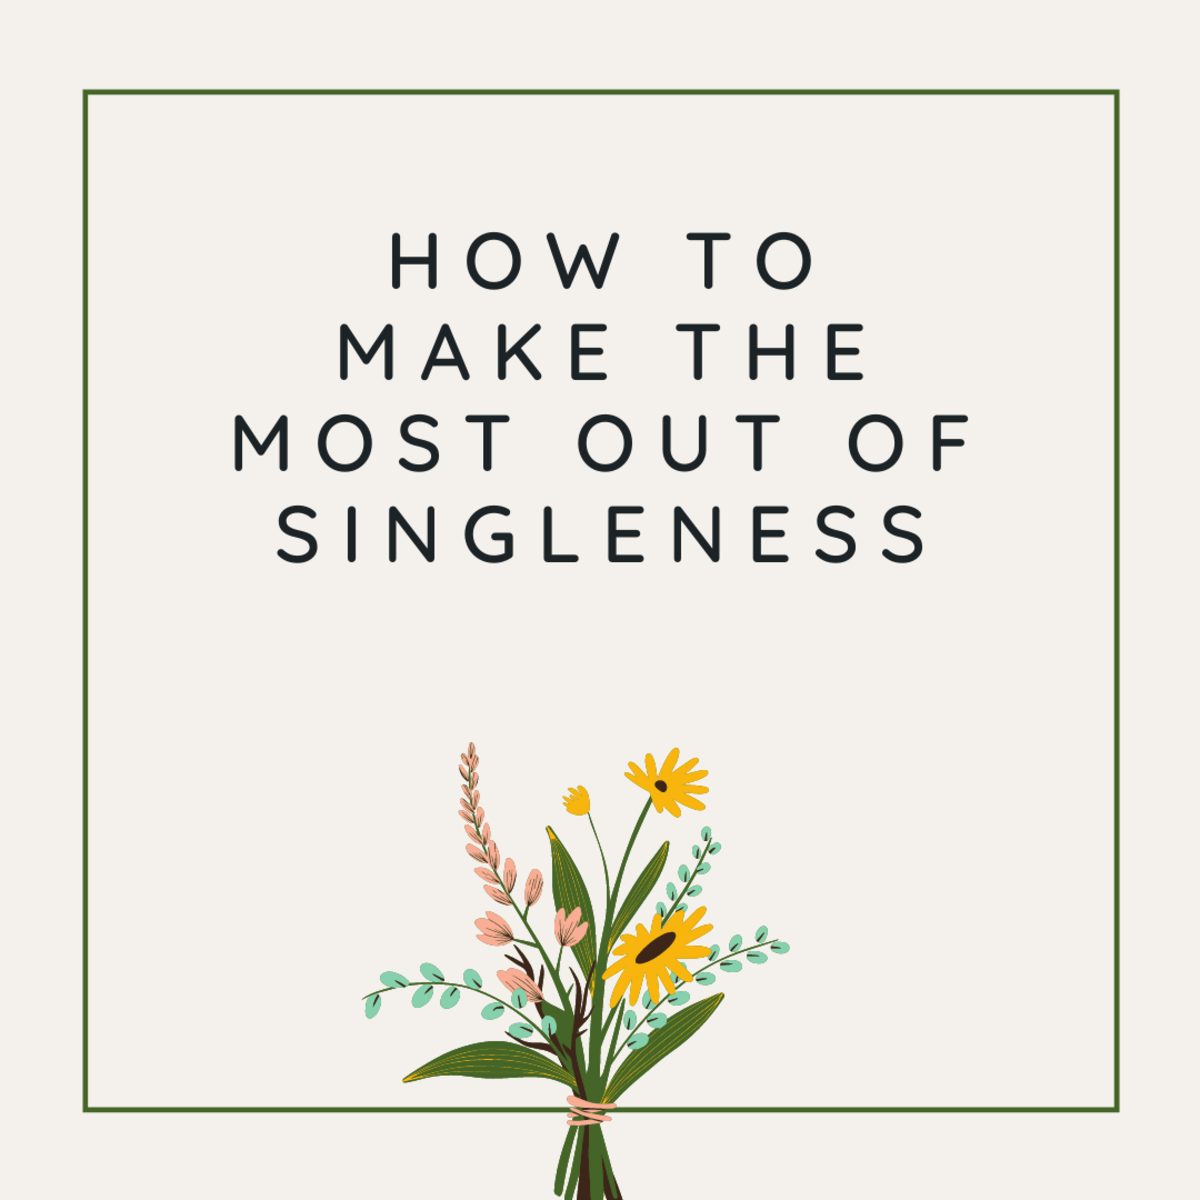 how-to-make-the-most-out-of-singleness